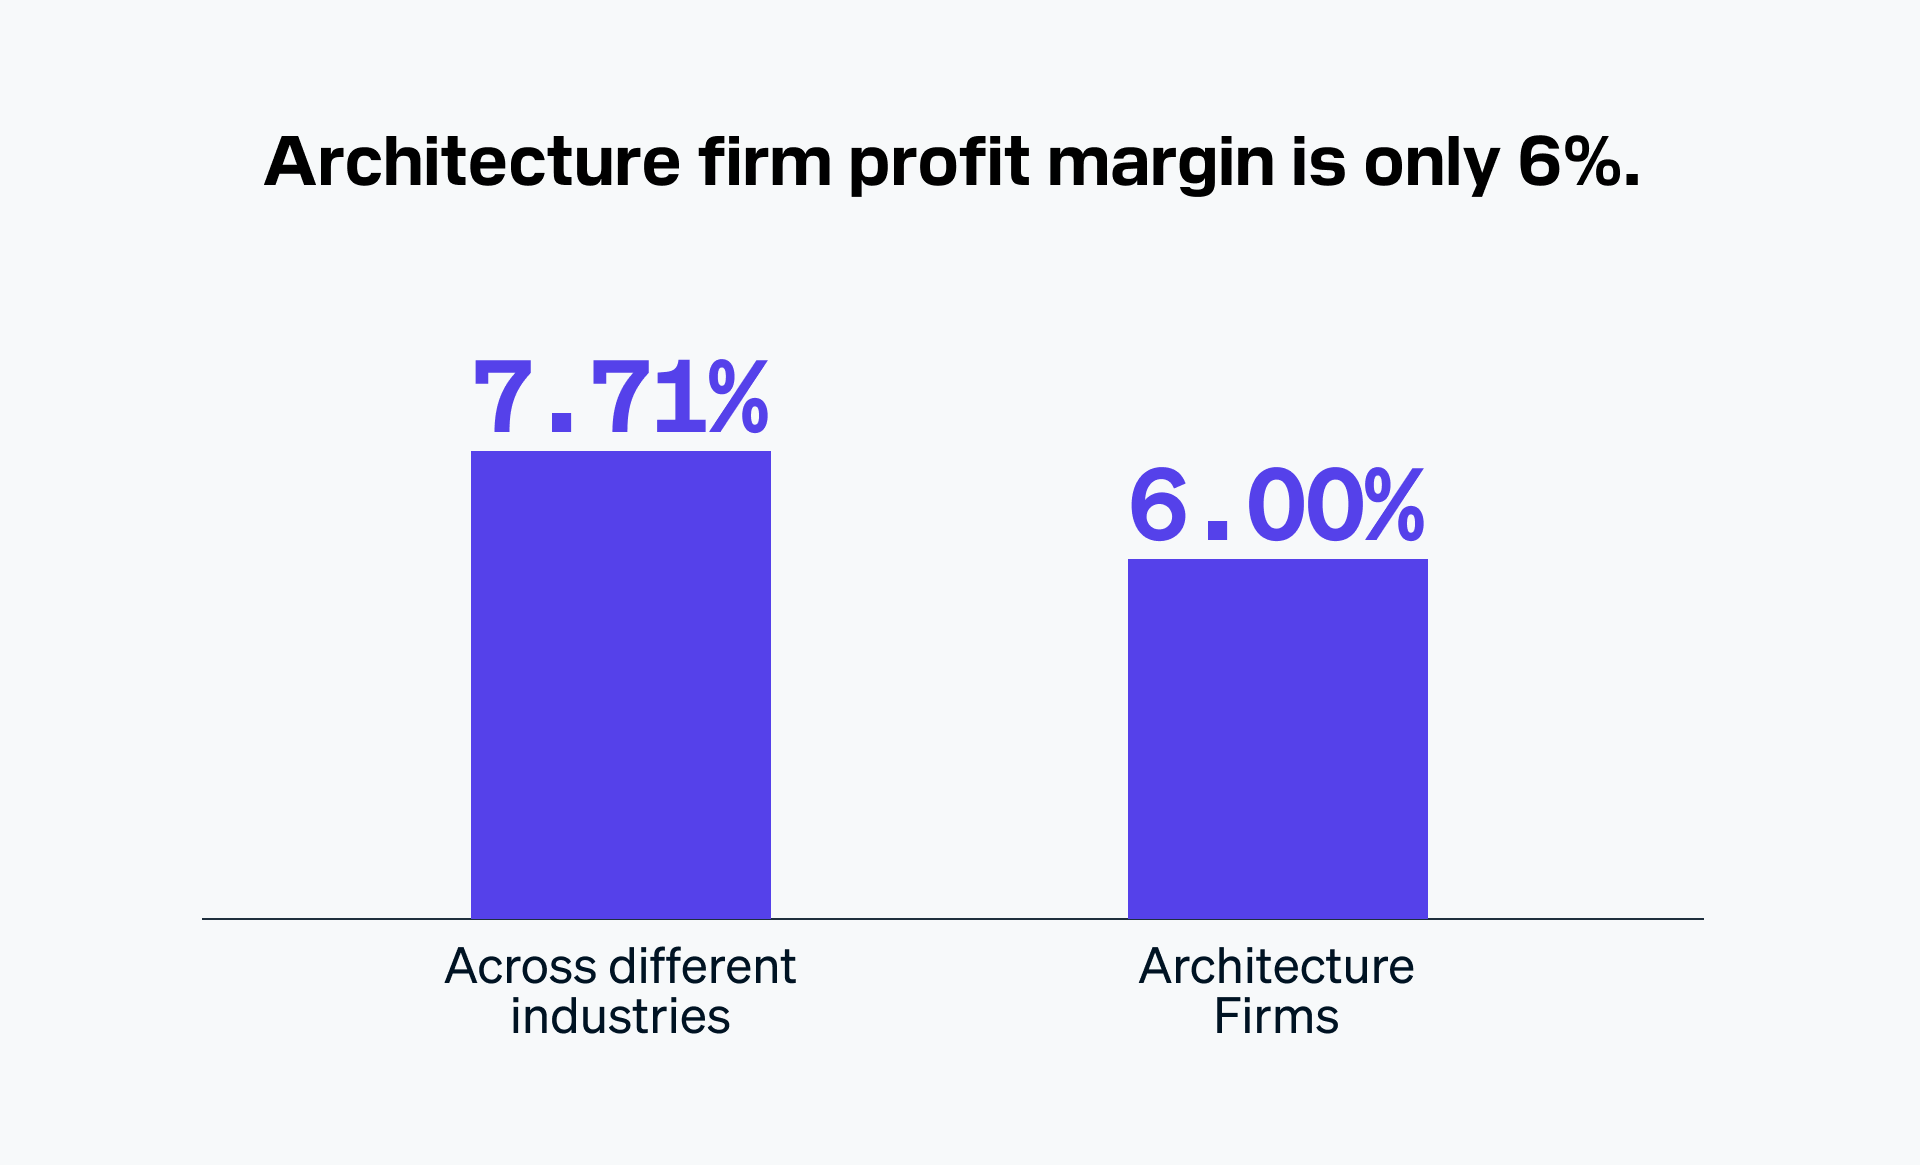 Architecture firm profit margin is only 6%.